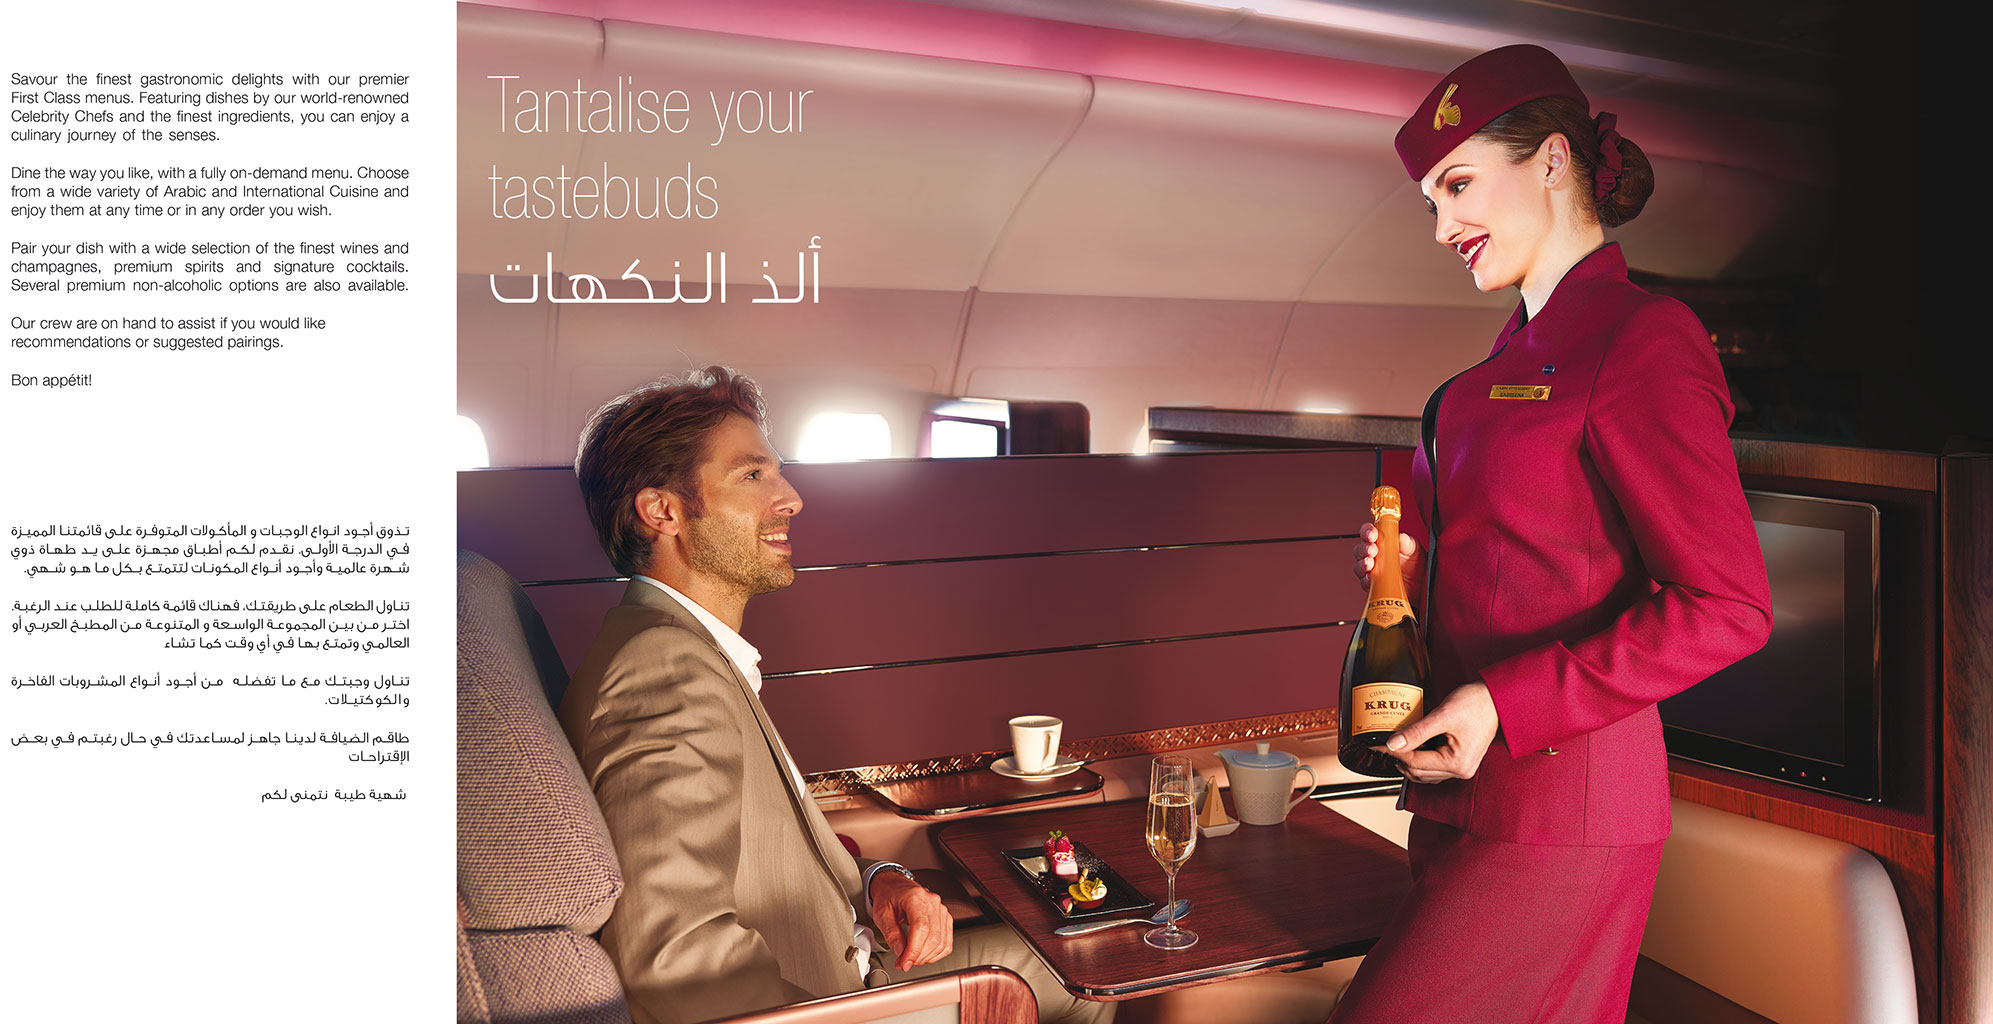 First-Class-Cabin-Guide_FINAL-V8-with-Arabic-HR-8.jpg